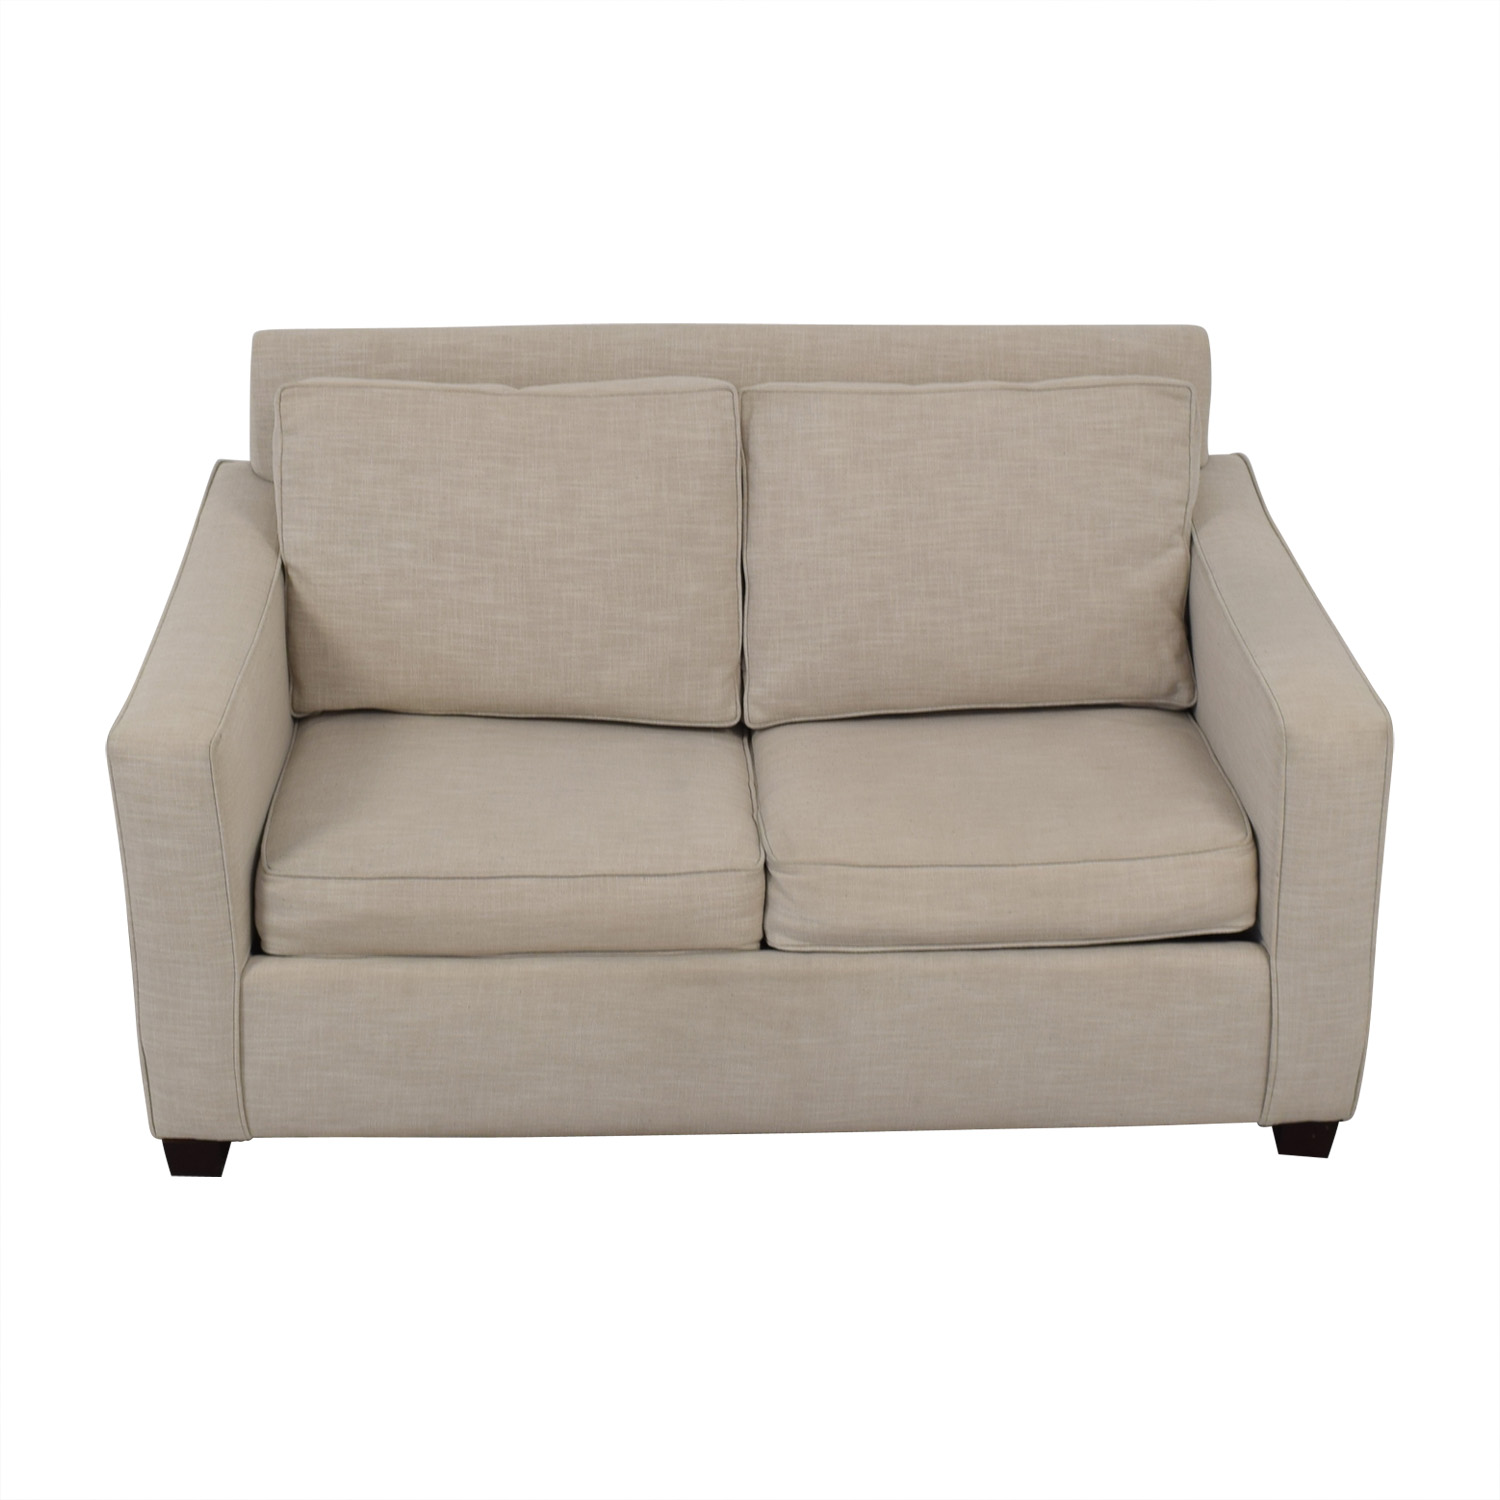 Remarkable 82 Off West Elm West Elm Henry Grey Loveseat With Twin Pullout Convertible Sofas Gamerscity Chair Design For Home Gamerscityorg